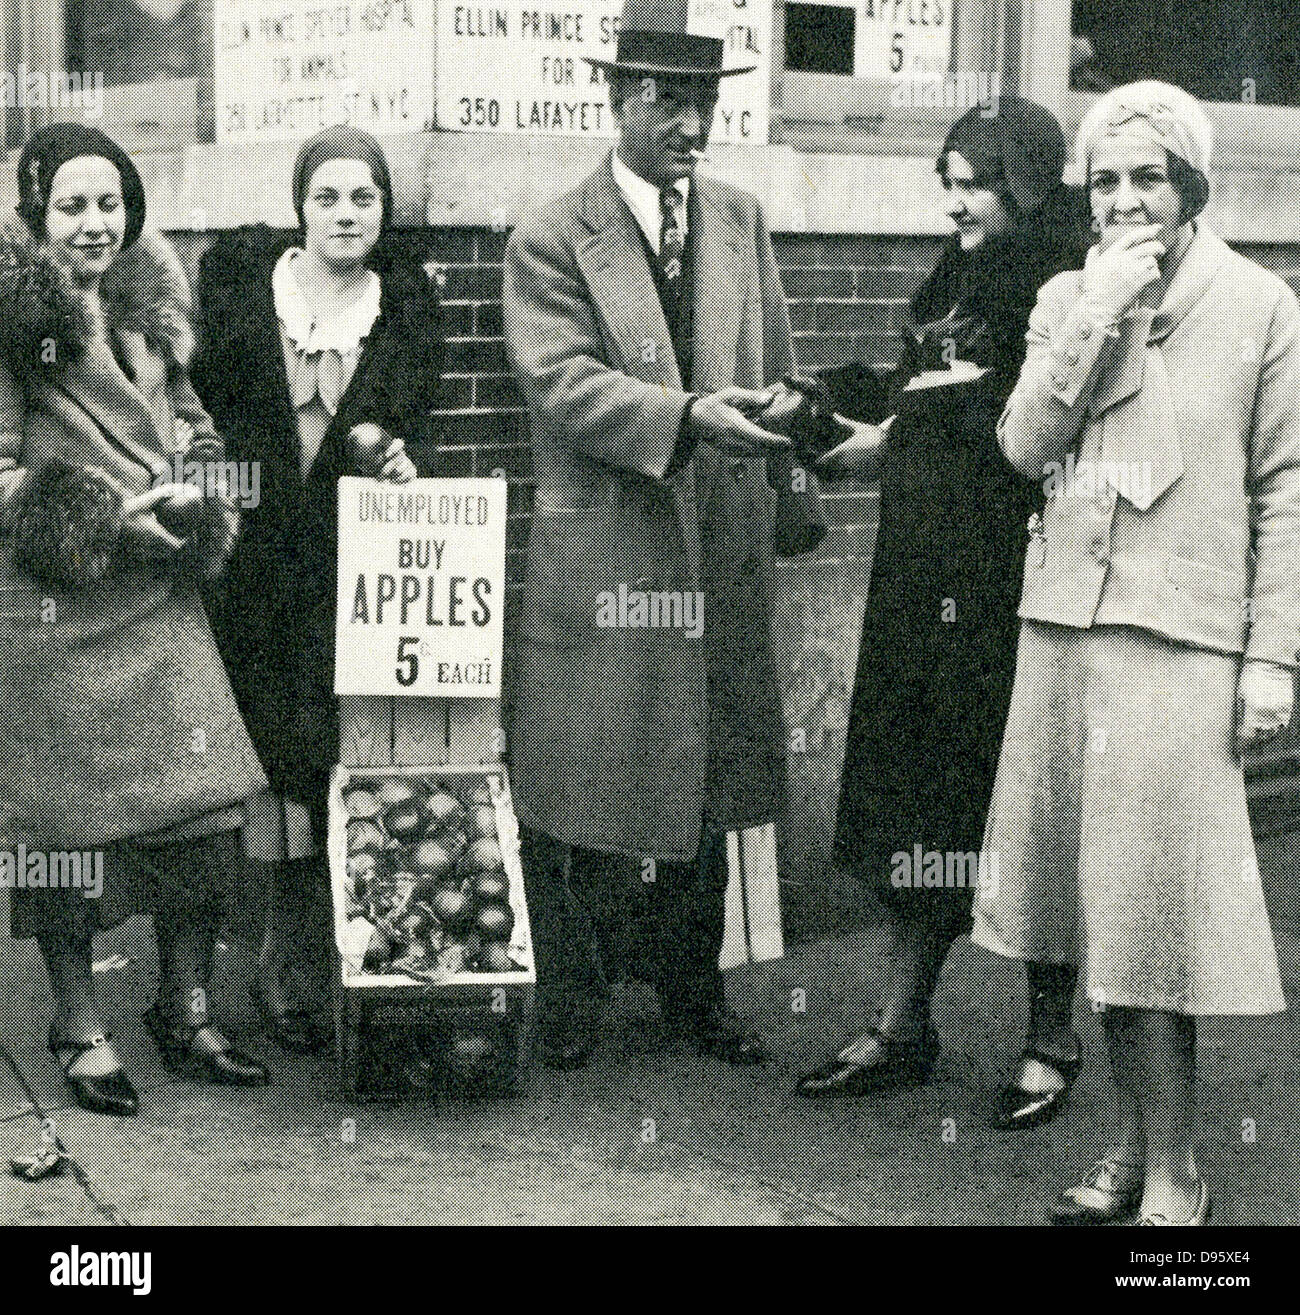 The American Depression - 1930s. Apple vendors stood at street corners in almost every city, trying to eke out a - Stock Image